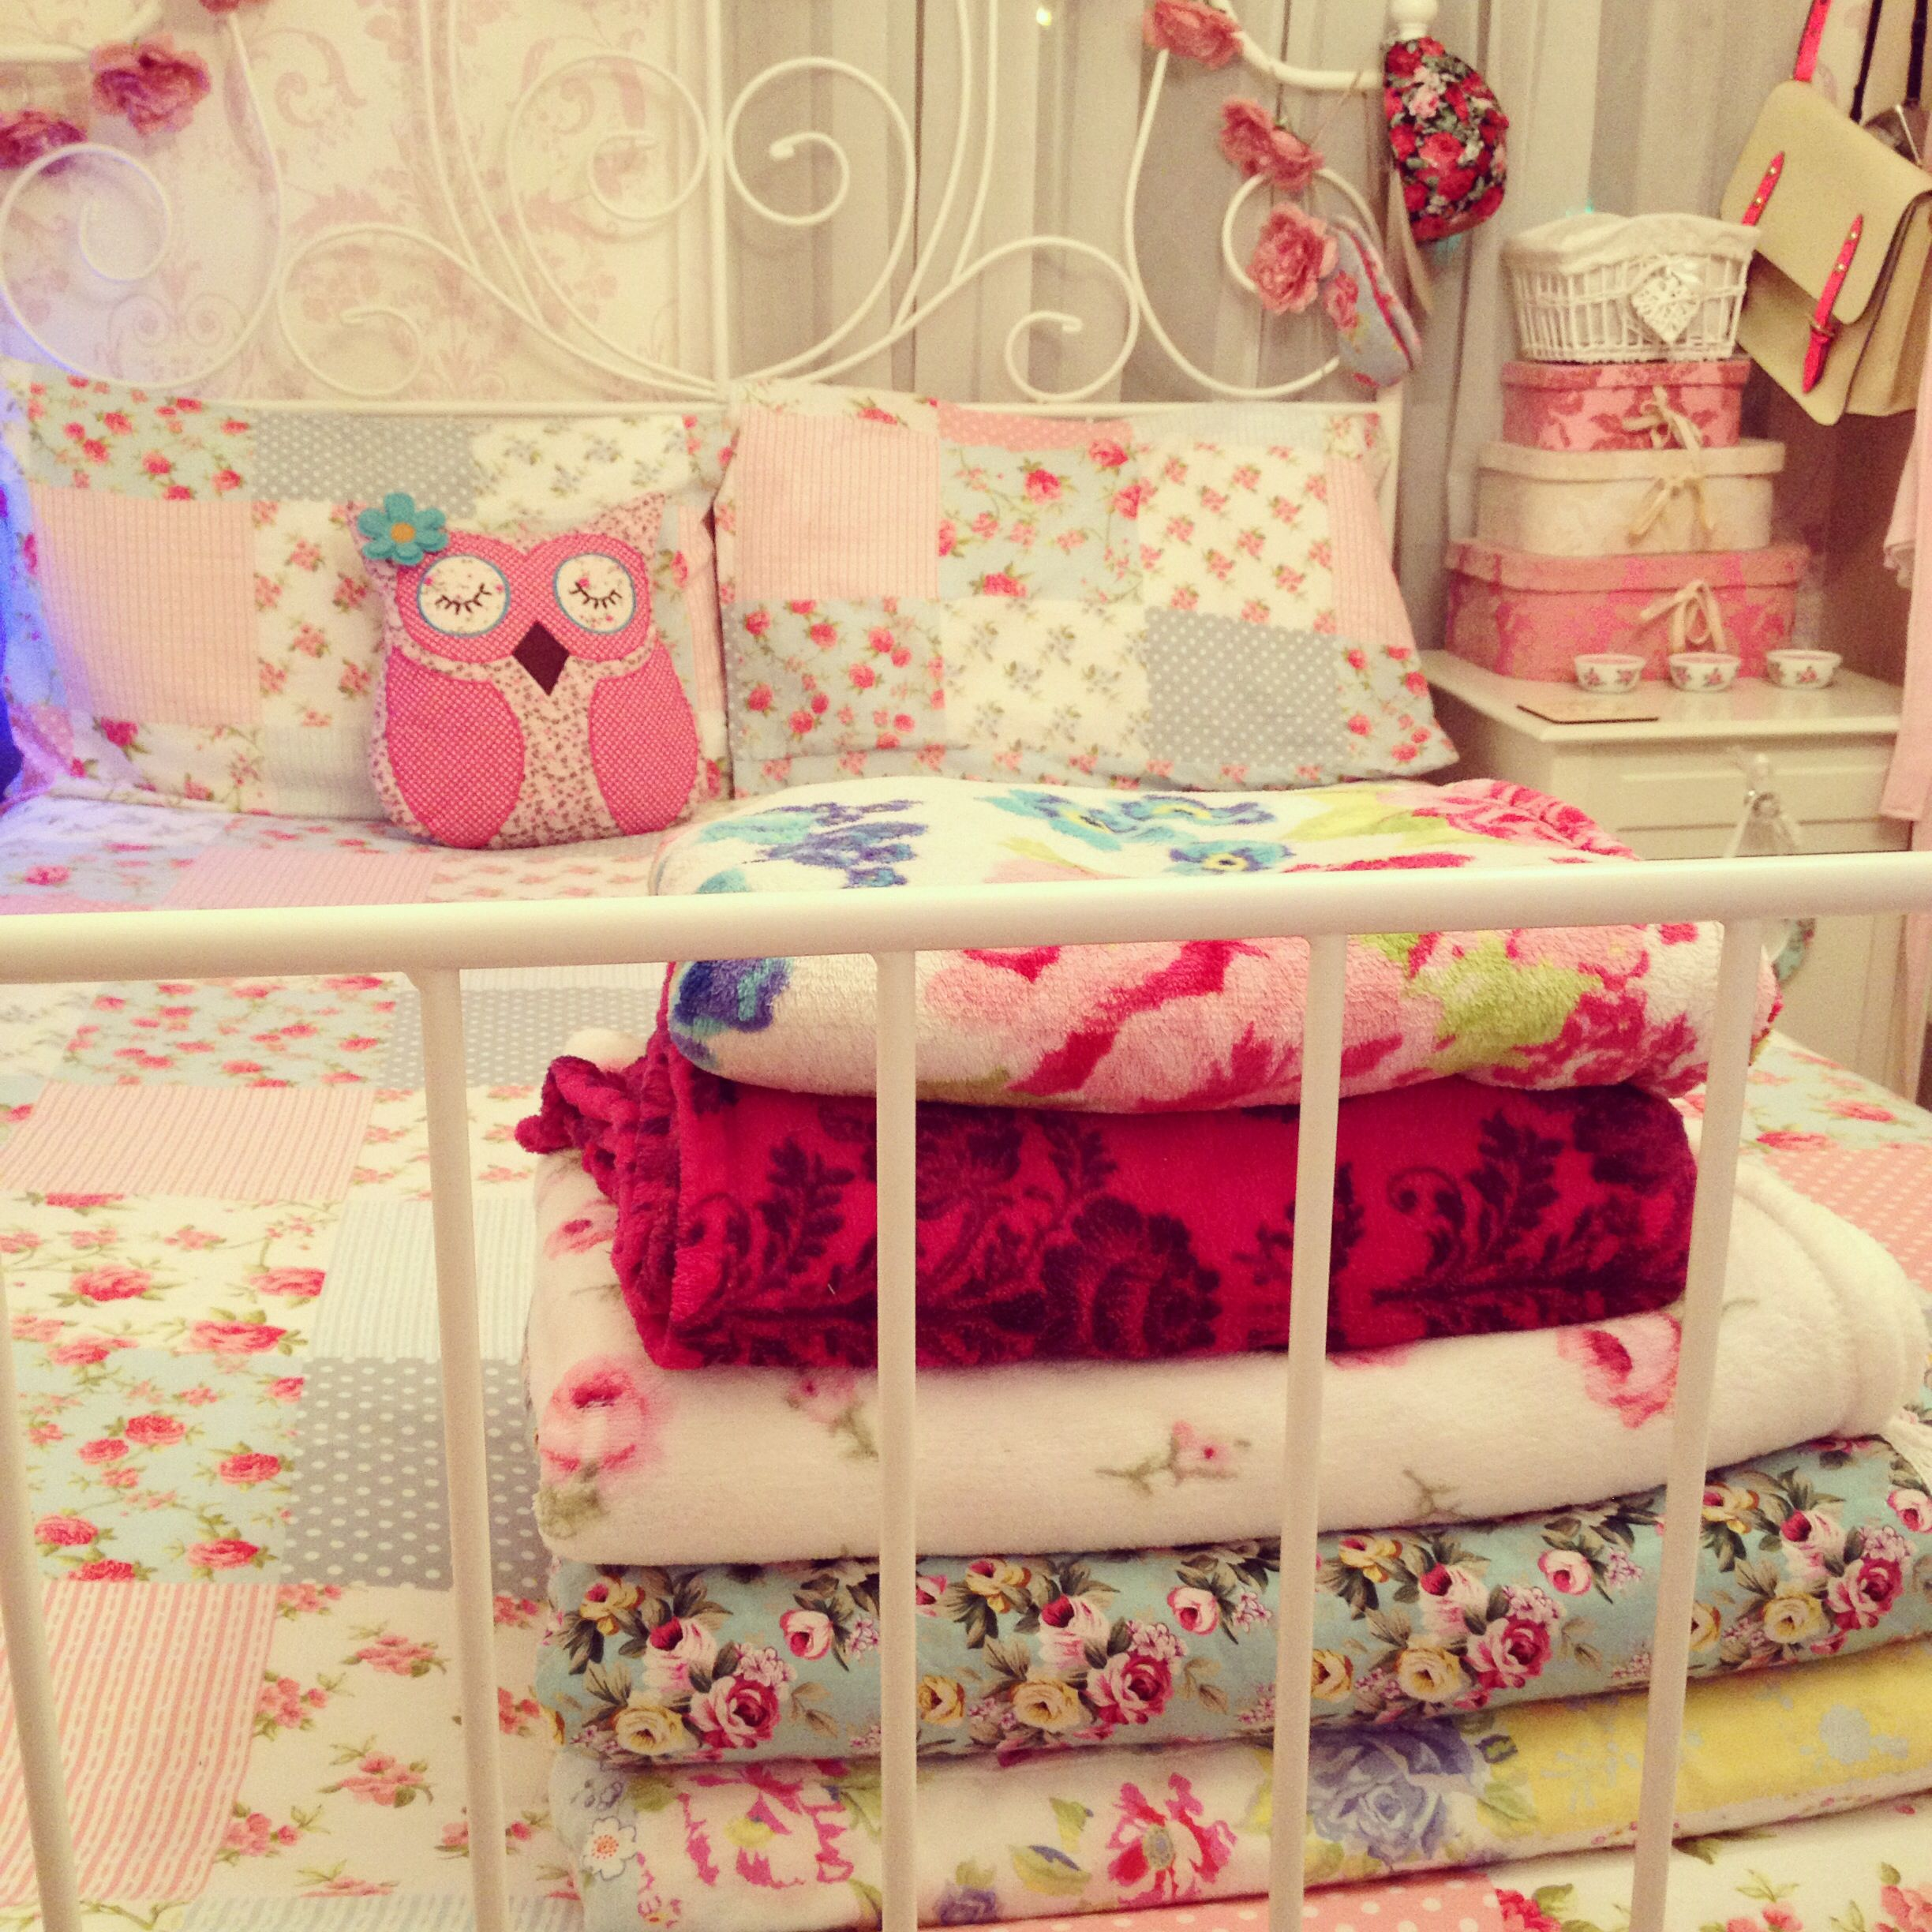 My clean shabby chic country cottage vintage kitsch bedroom ...